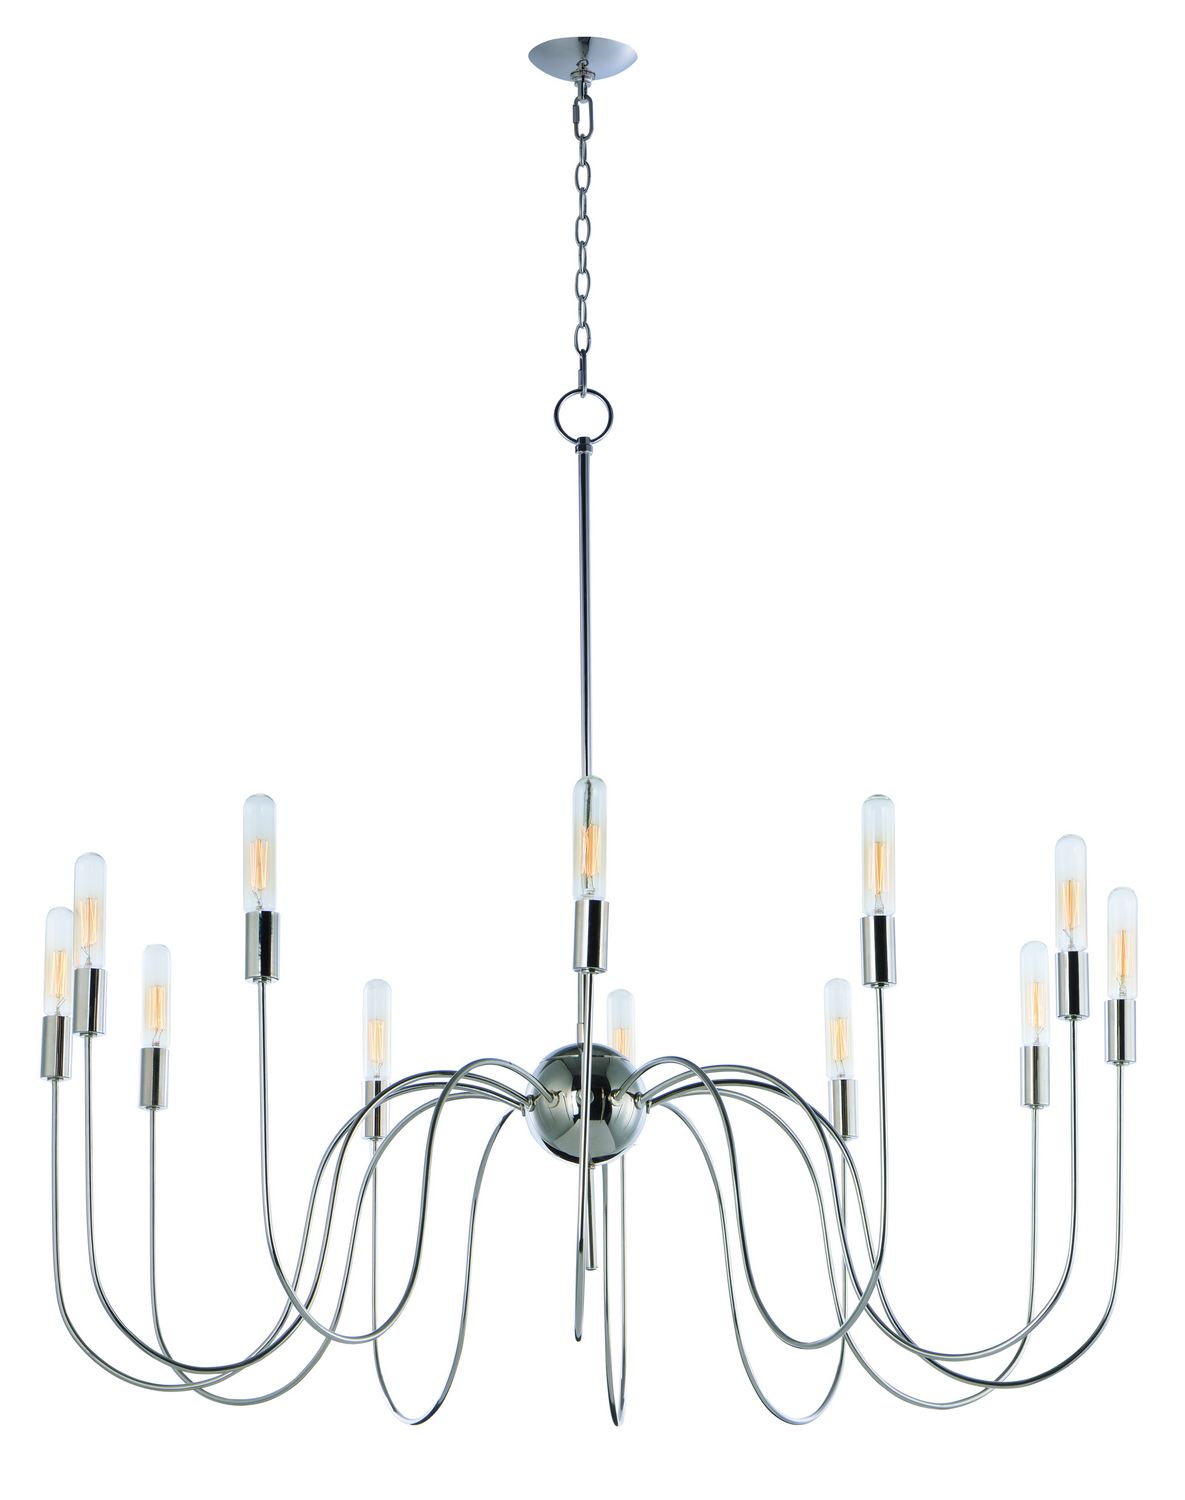 12 Light Chandelier from the Willsburg collection by Maxim 22406PN